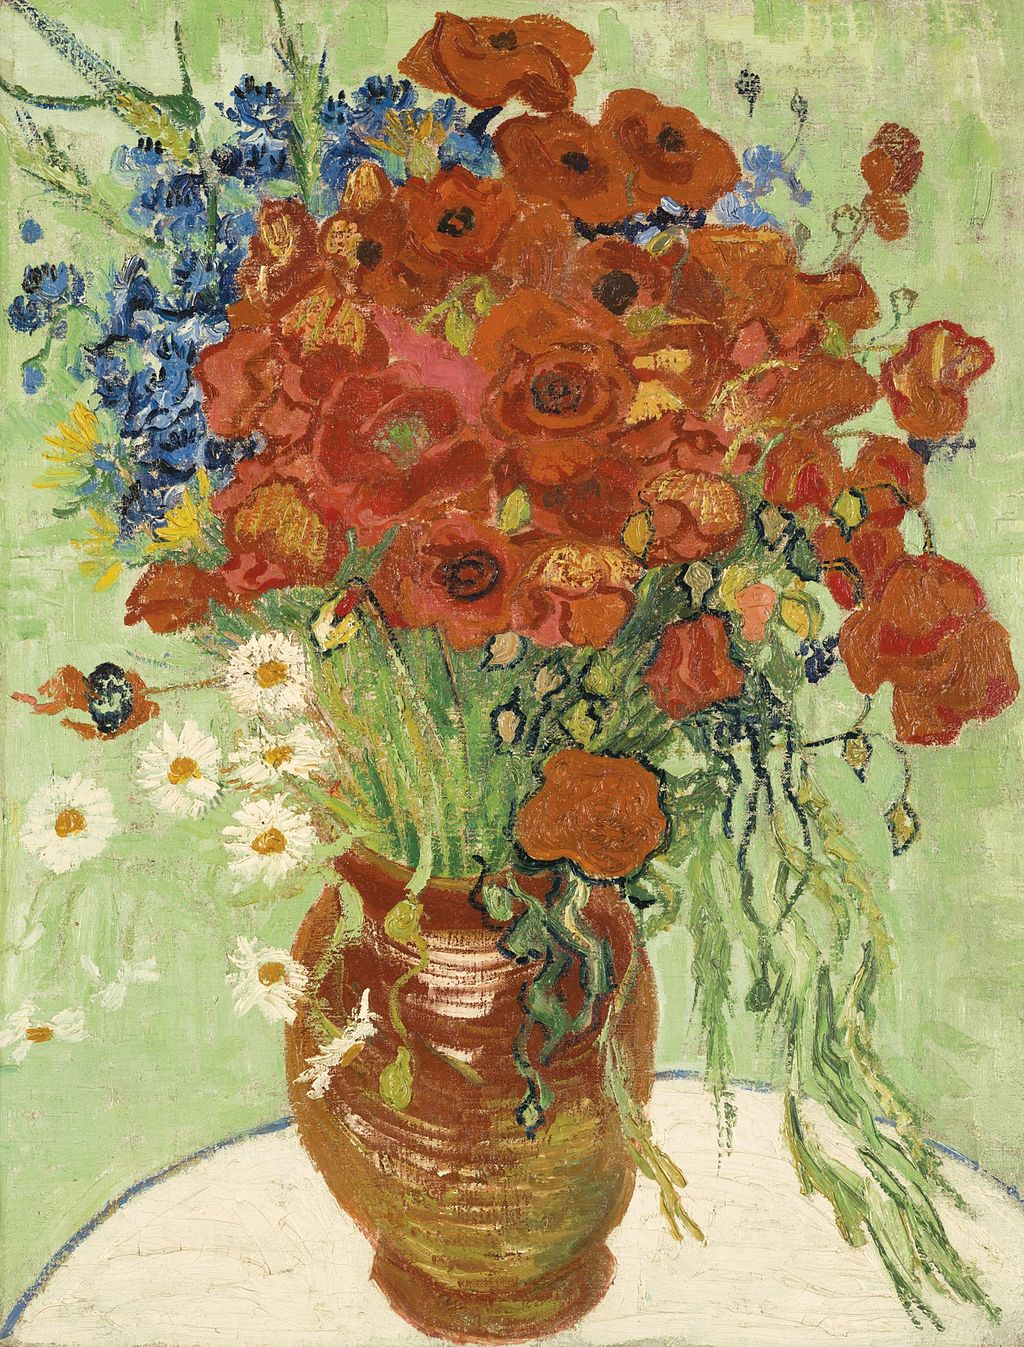 Vincent van Gogh - Vase with Cornflowers and Poppies - F280 JH2032